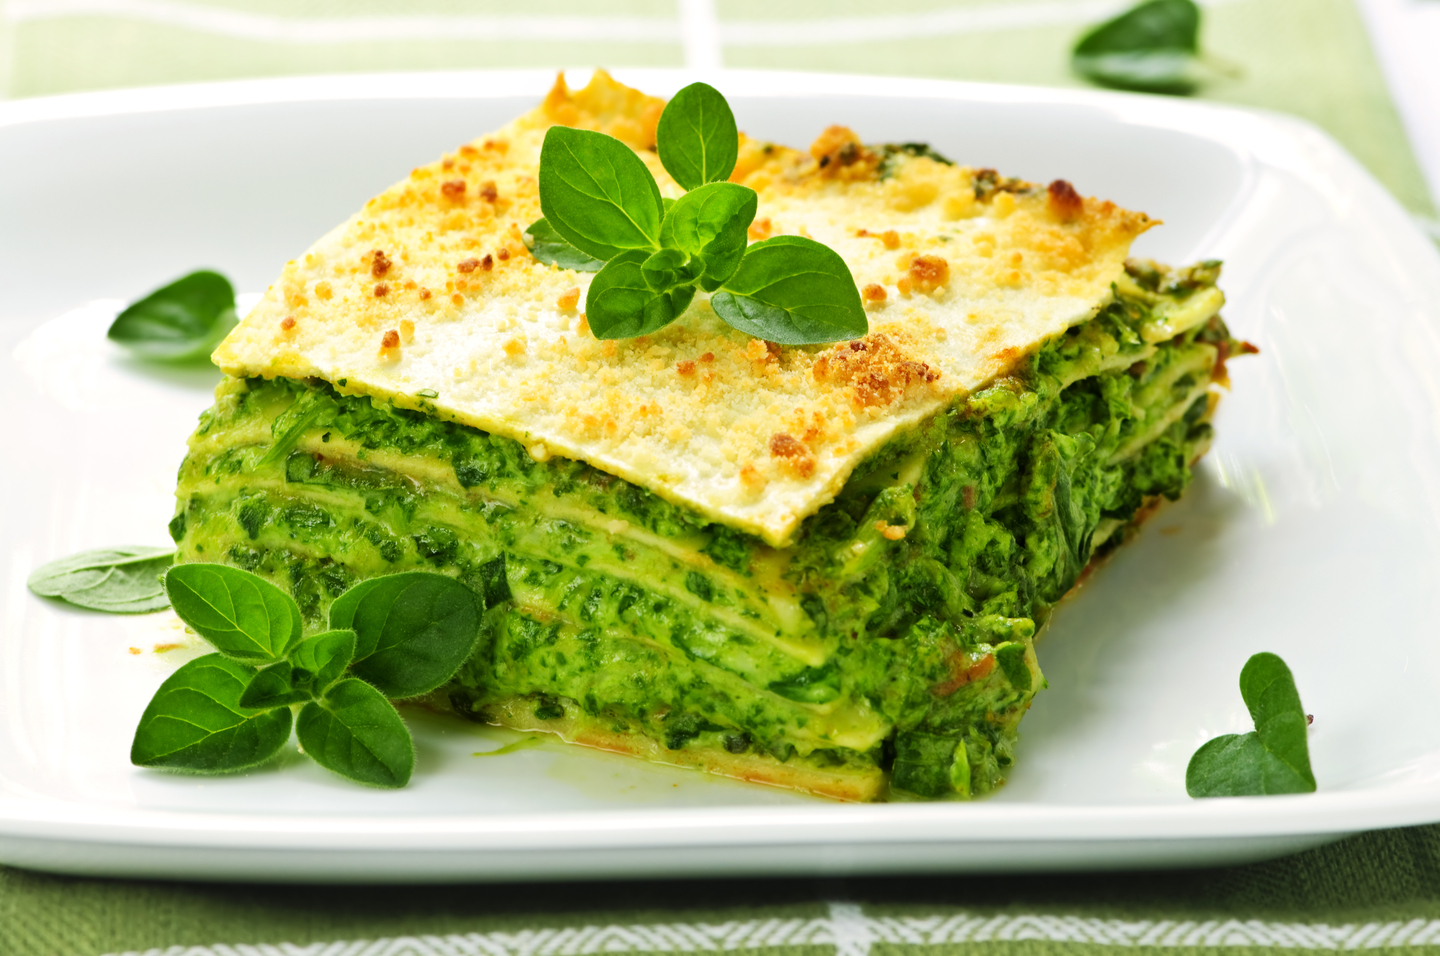 Serving of fresh baked vegetarian spinach lasagna on a plate